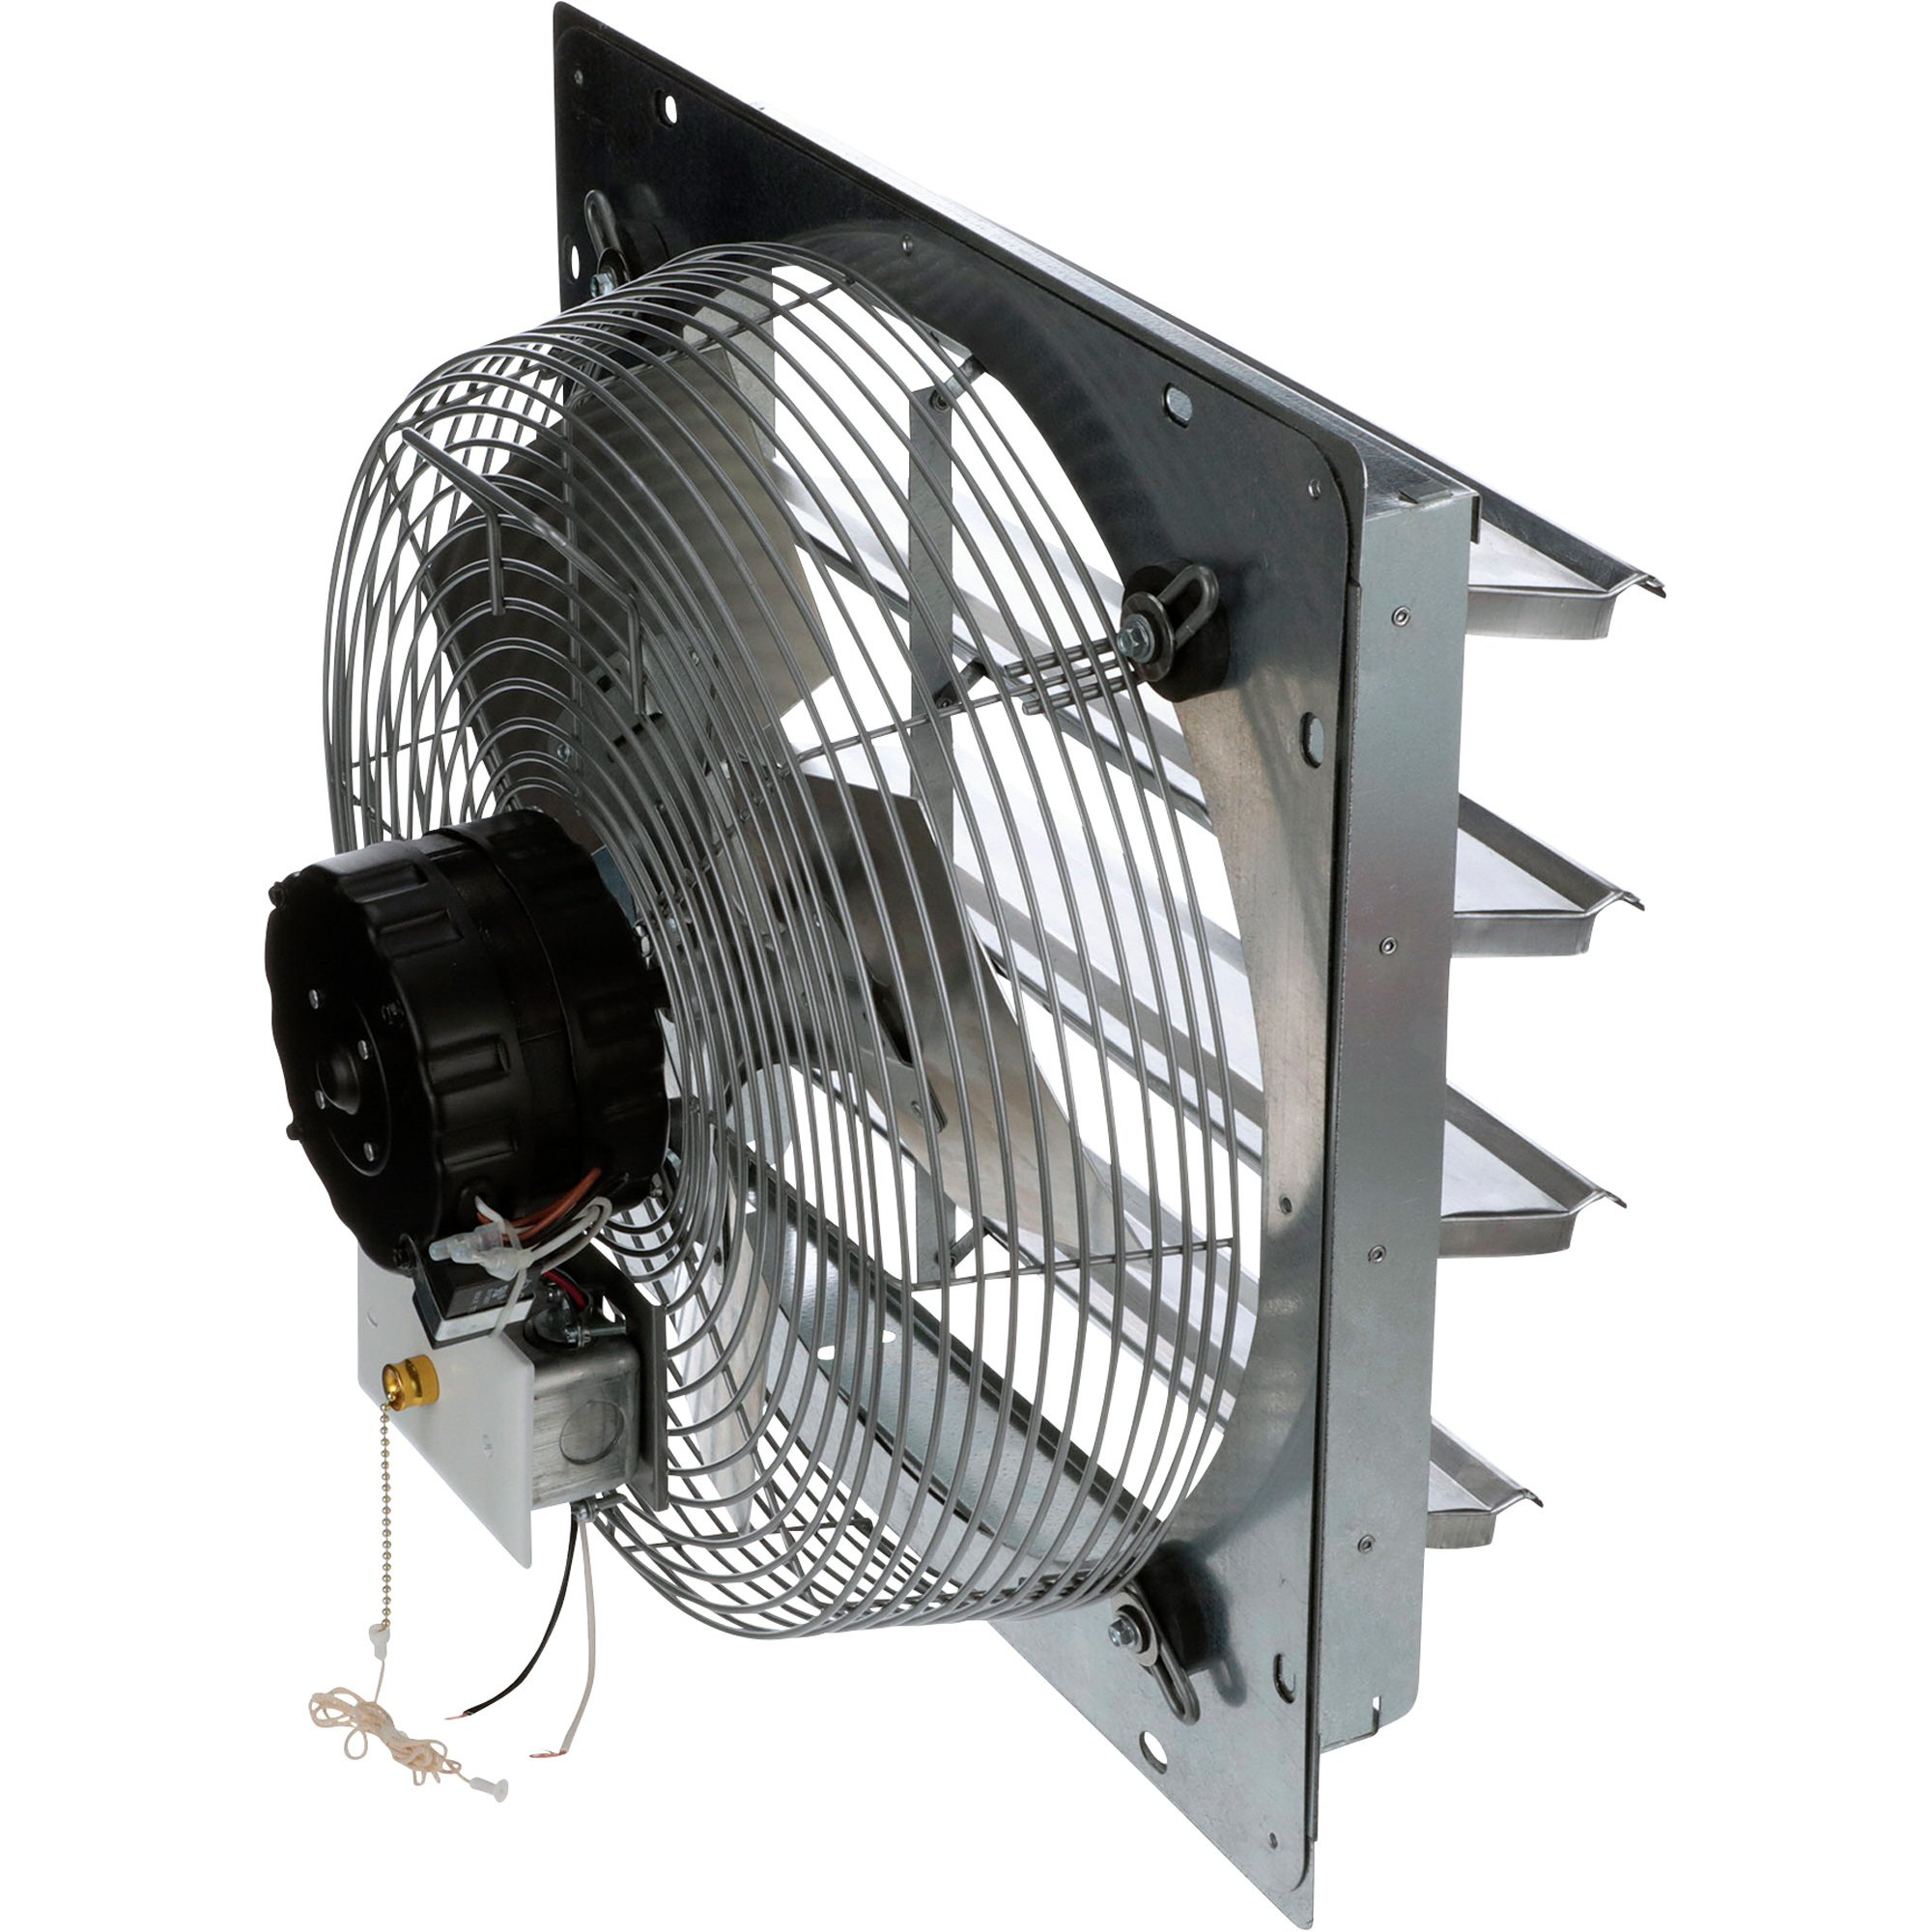 Types Of Industrial Fans : Tpi shutter mounted direct drive exhaust fan — in